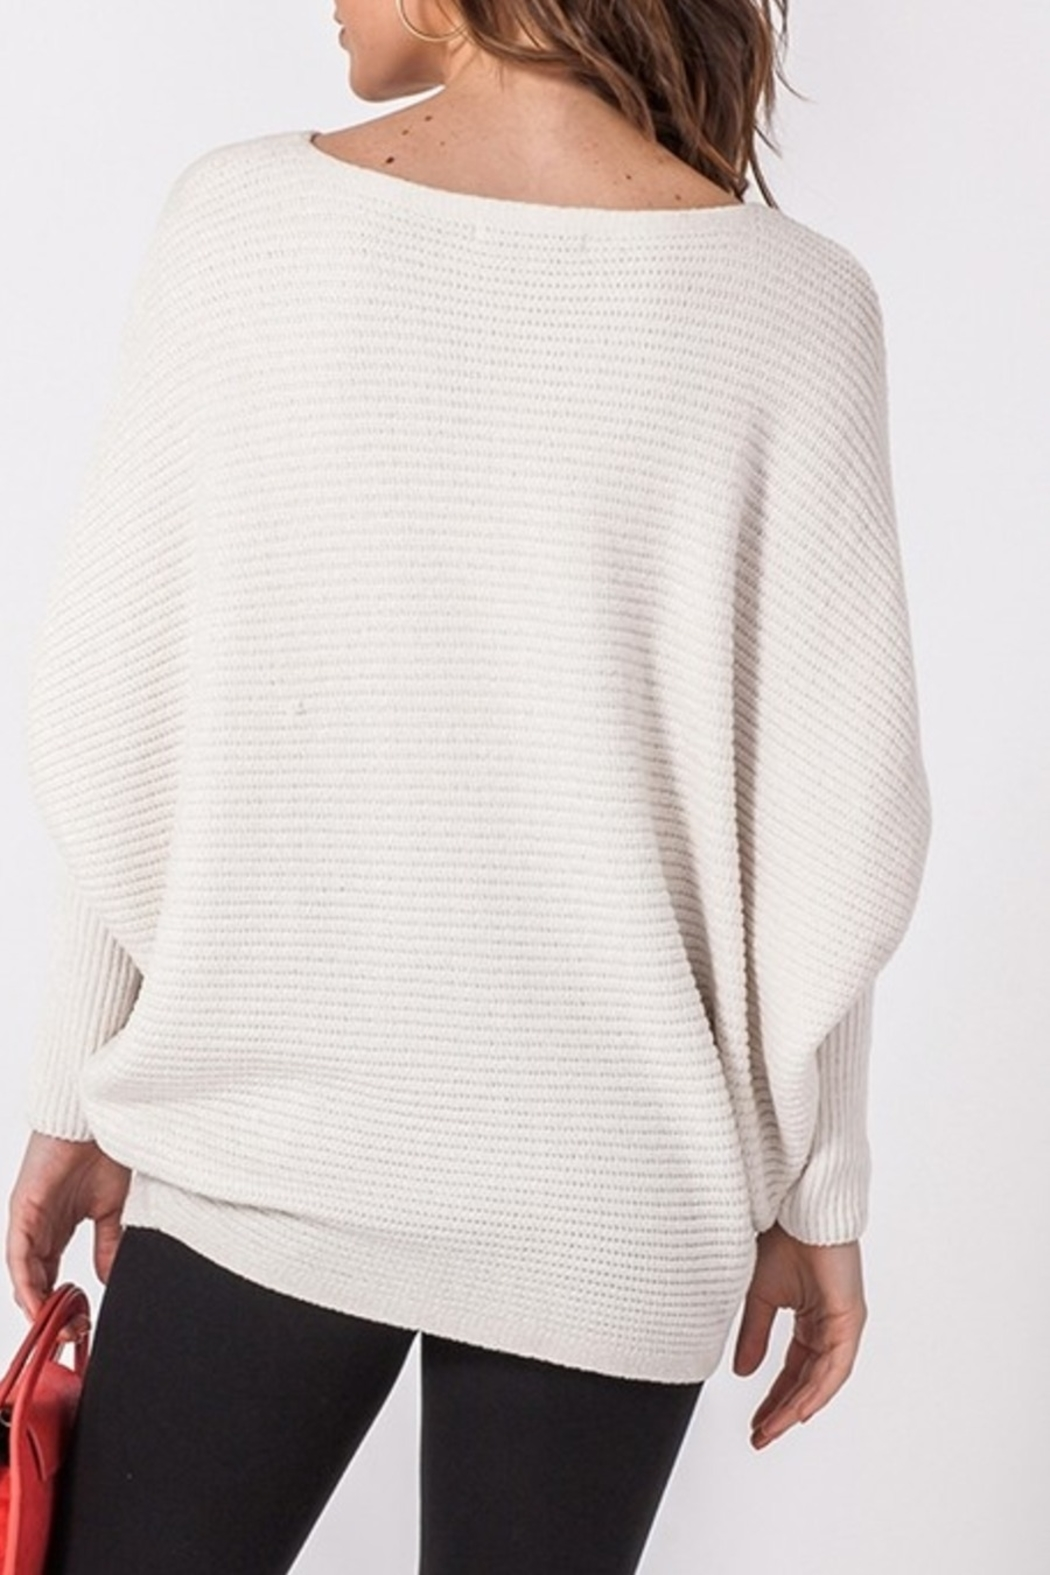 HYFVE Feeling Cozy sweater - Front Full Image